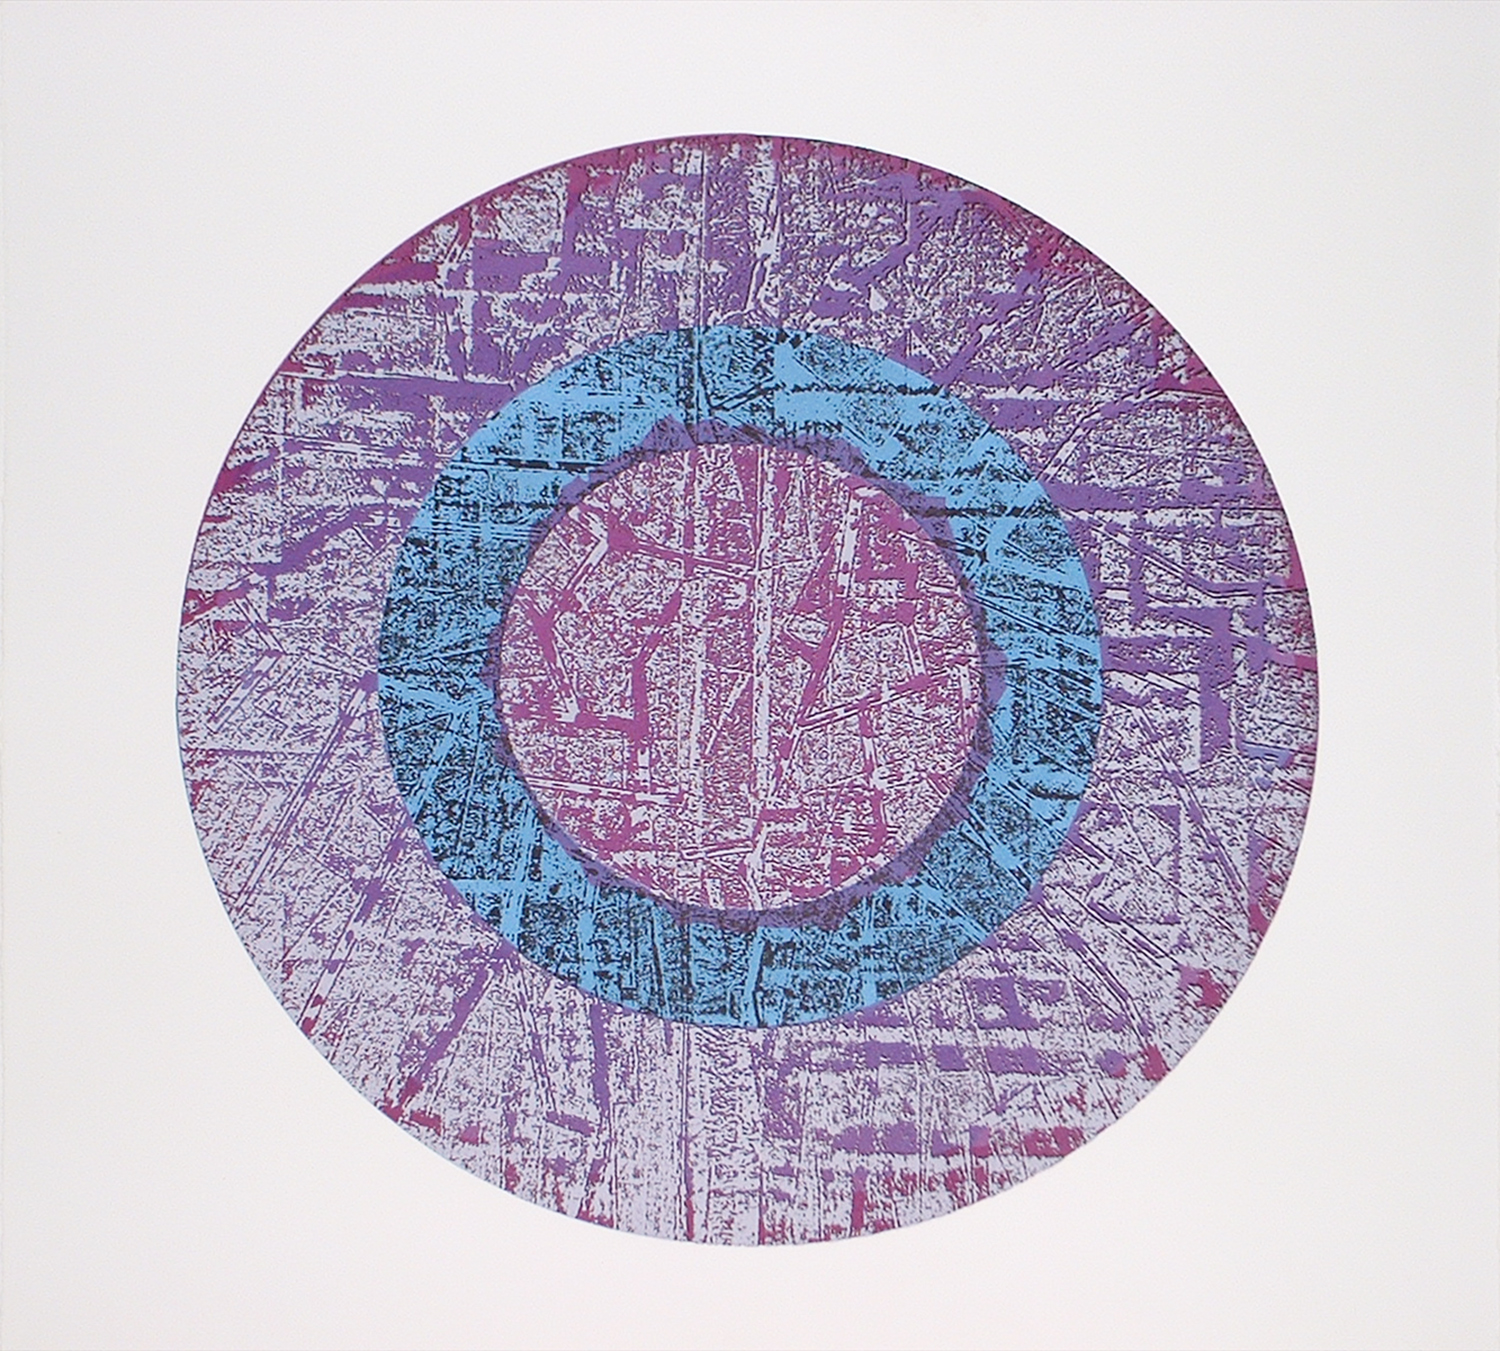 Berrisford Boothe, Untitled    Date:   2006   Size (cm - unframed):   51.5 x 51.5   Technique:   Screenprint   Materials:   Somerset UK Textured   Edition size:   20   Publisher:   Berrisford Boothe   Copyright:   The Artist